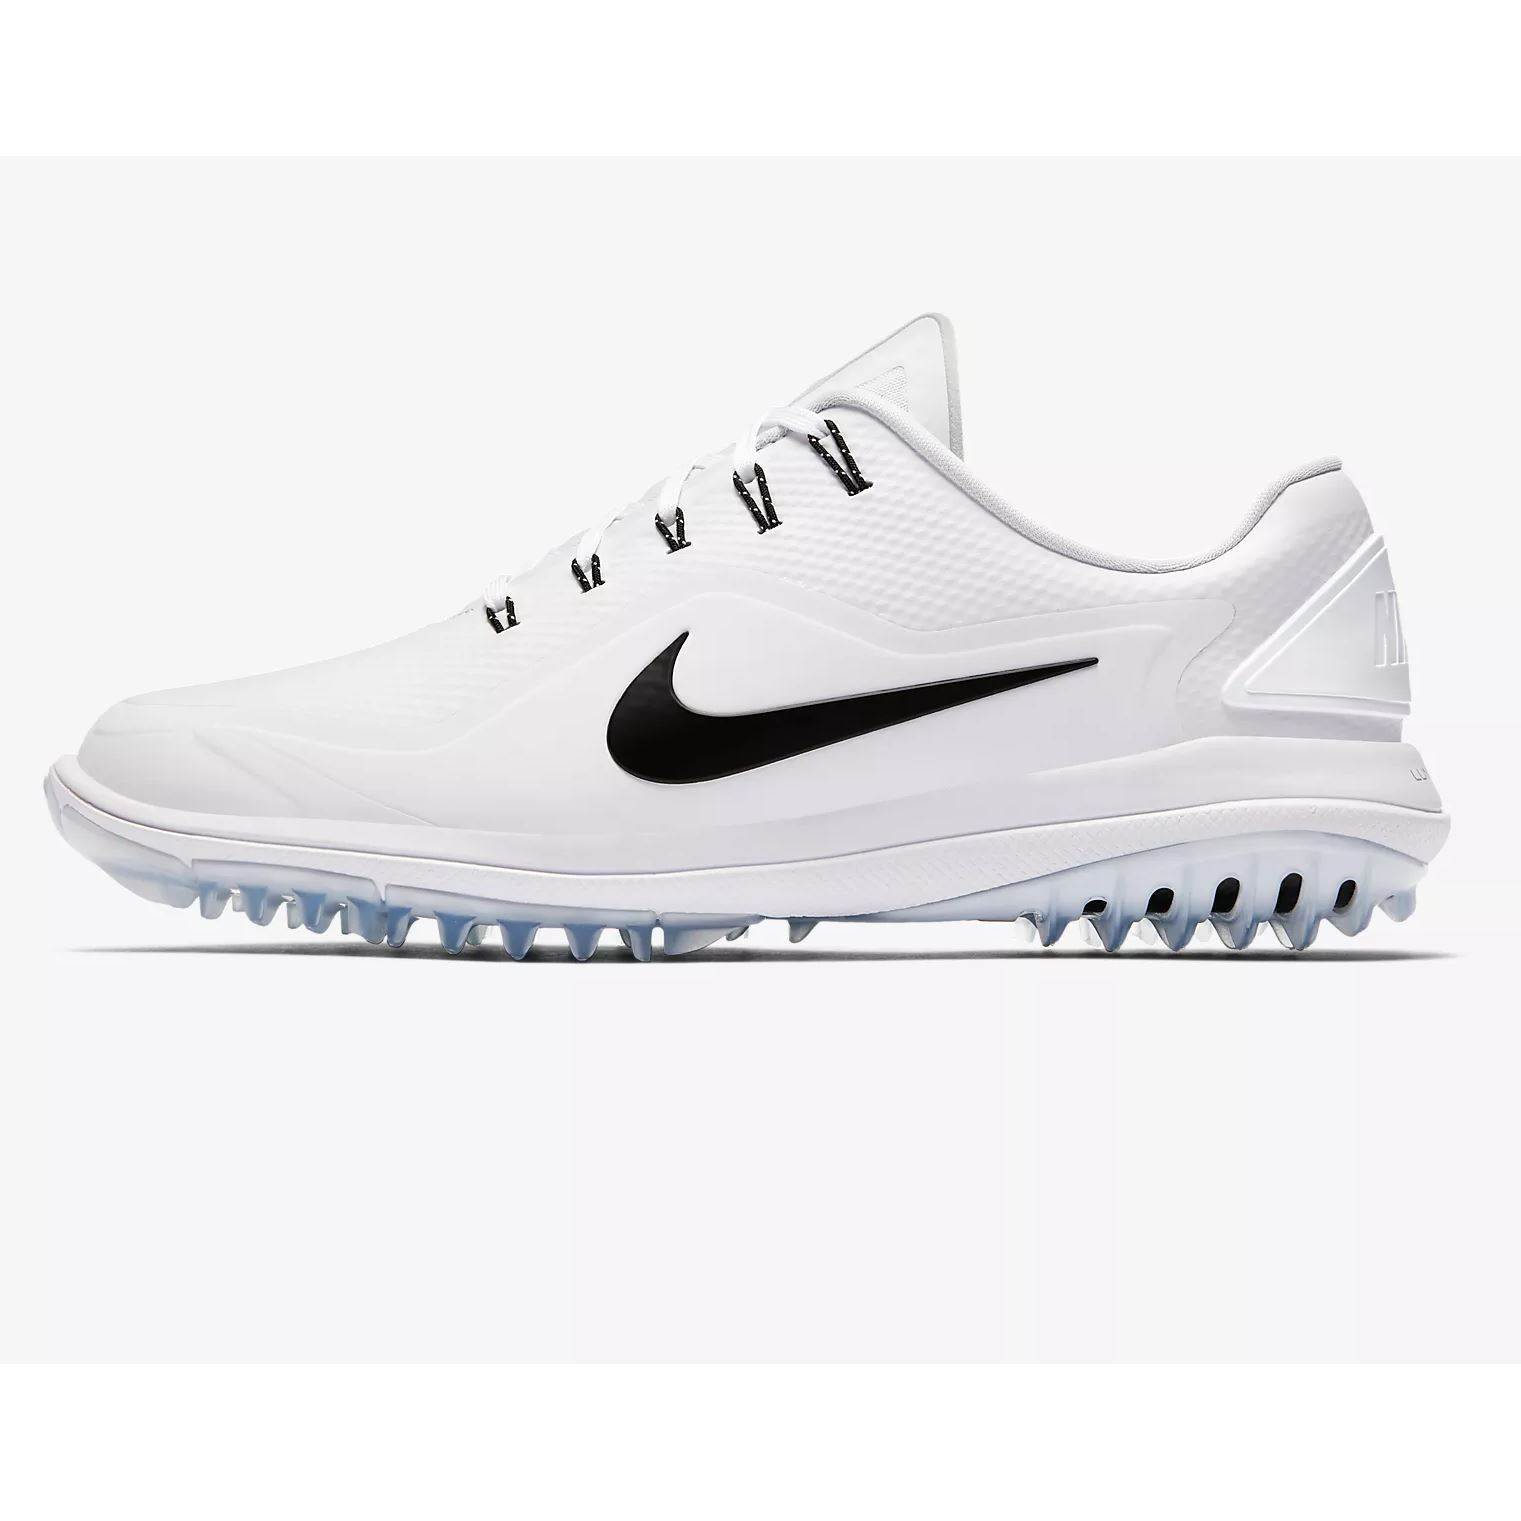 purchase cheap 897f6 a6308 Picture of Nike Lunar Control Vapor 2 Golf Shoes - White